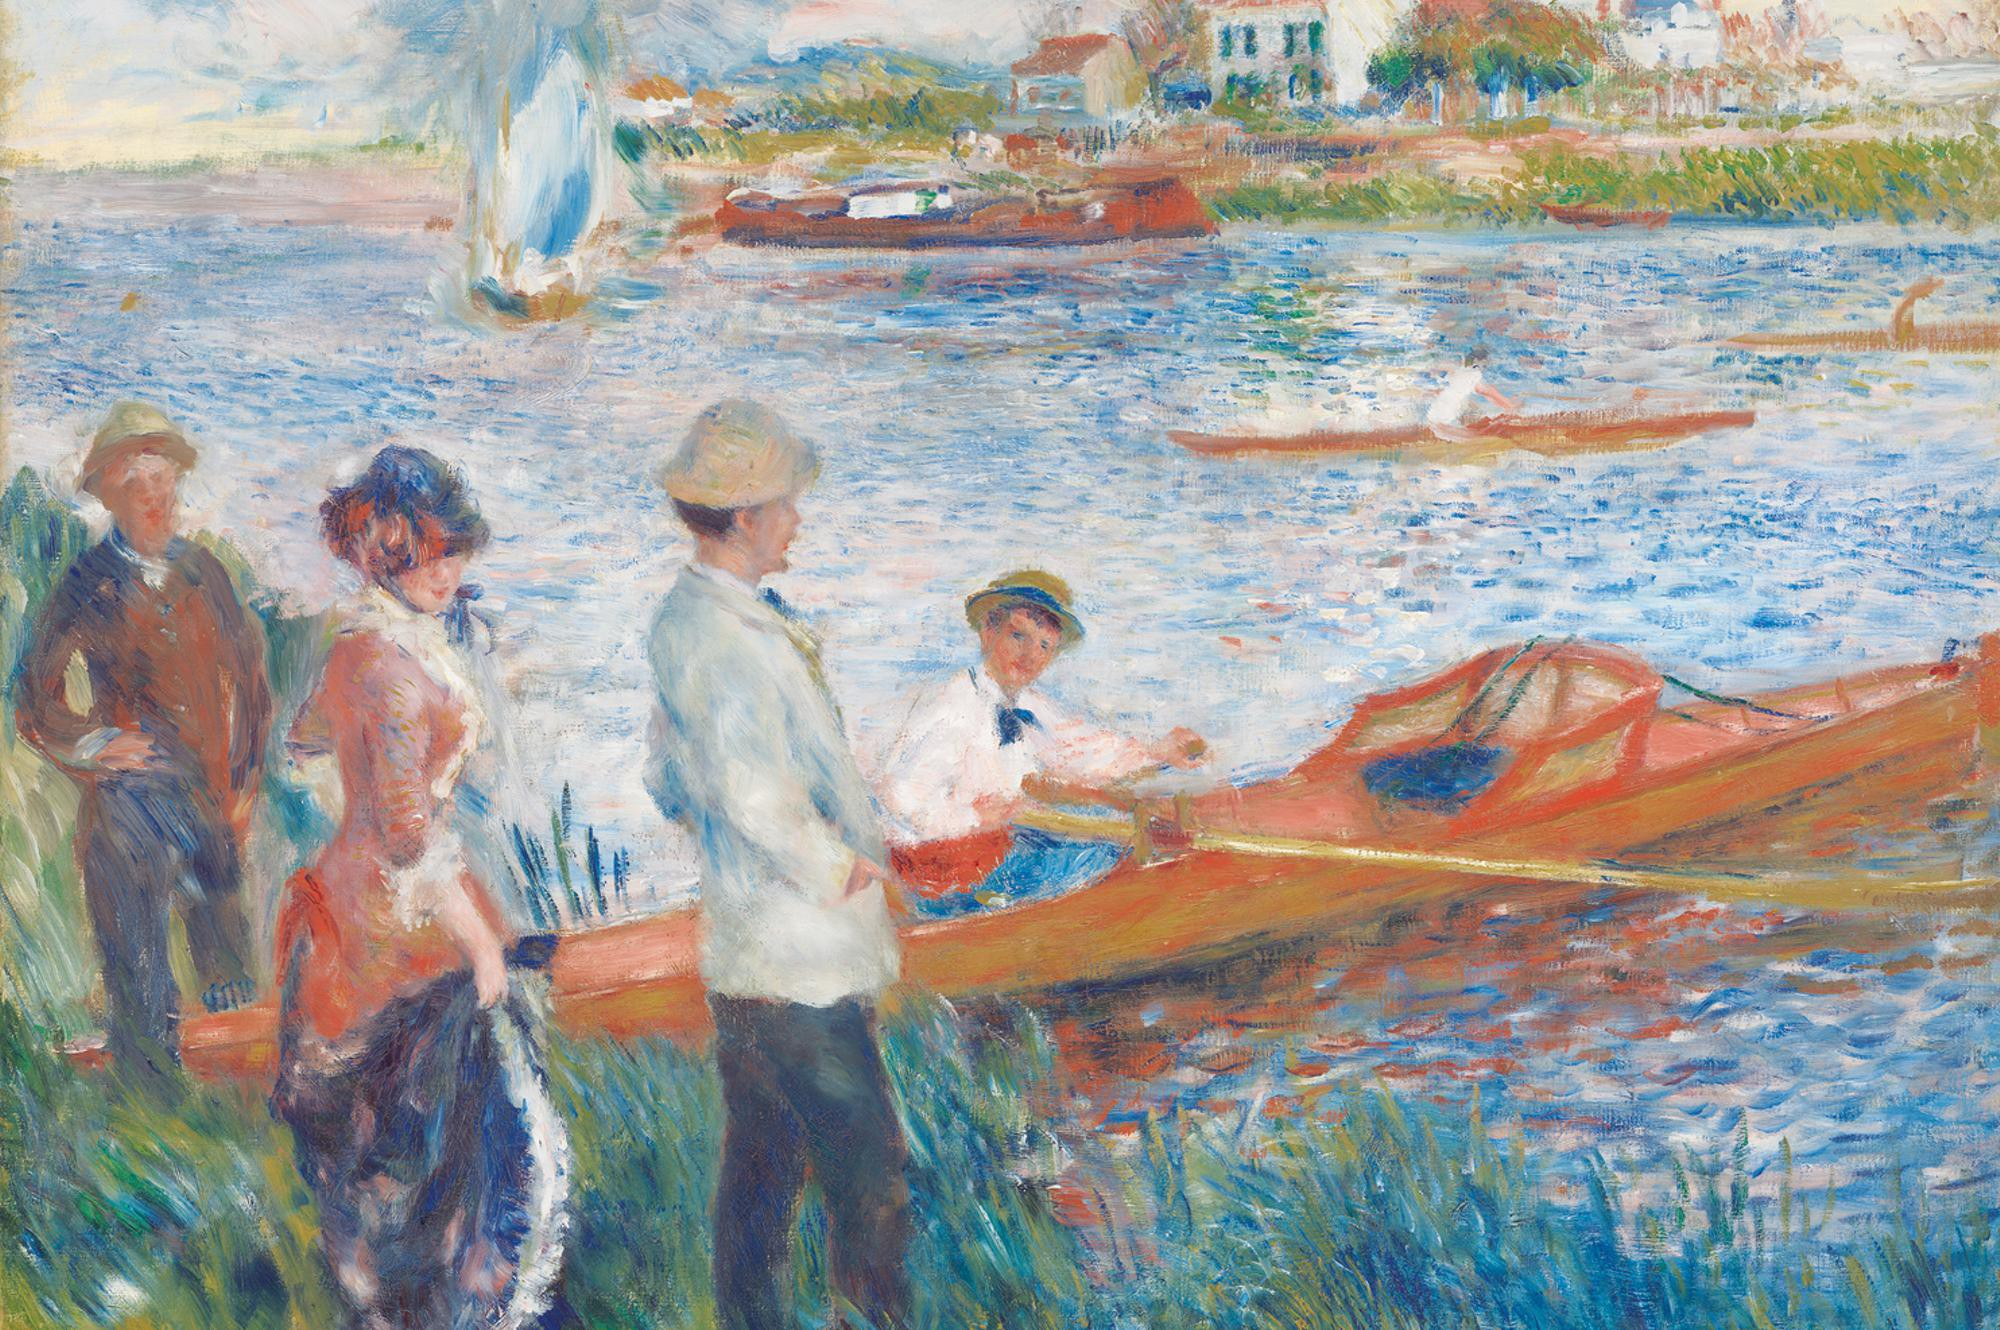 Oarsmen at Chatou, 1879 — Pierre-Auguste Renoir, National Gallery of Art